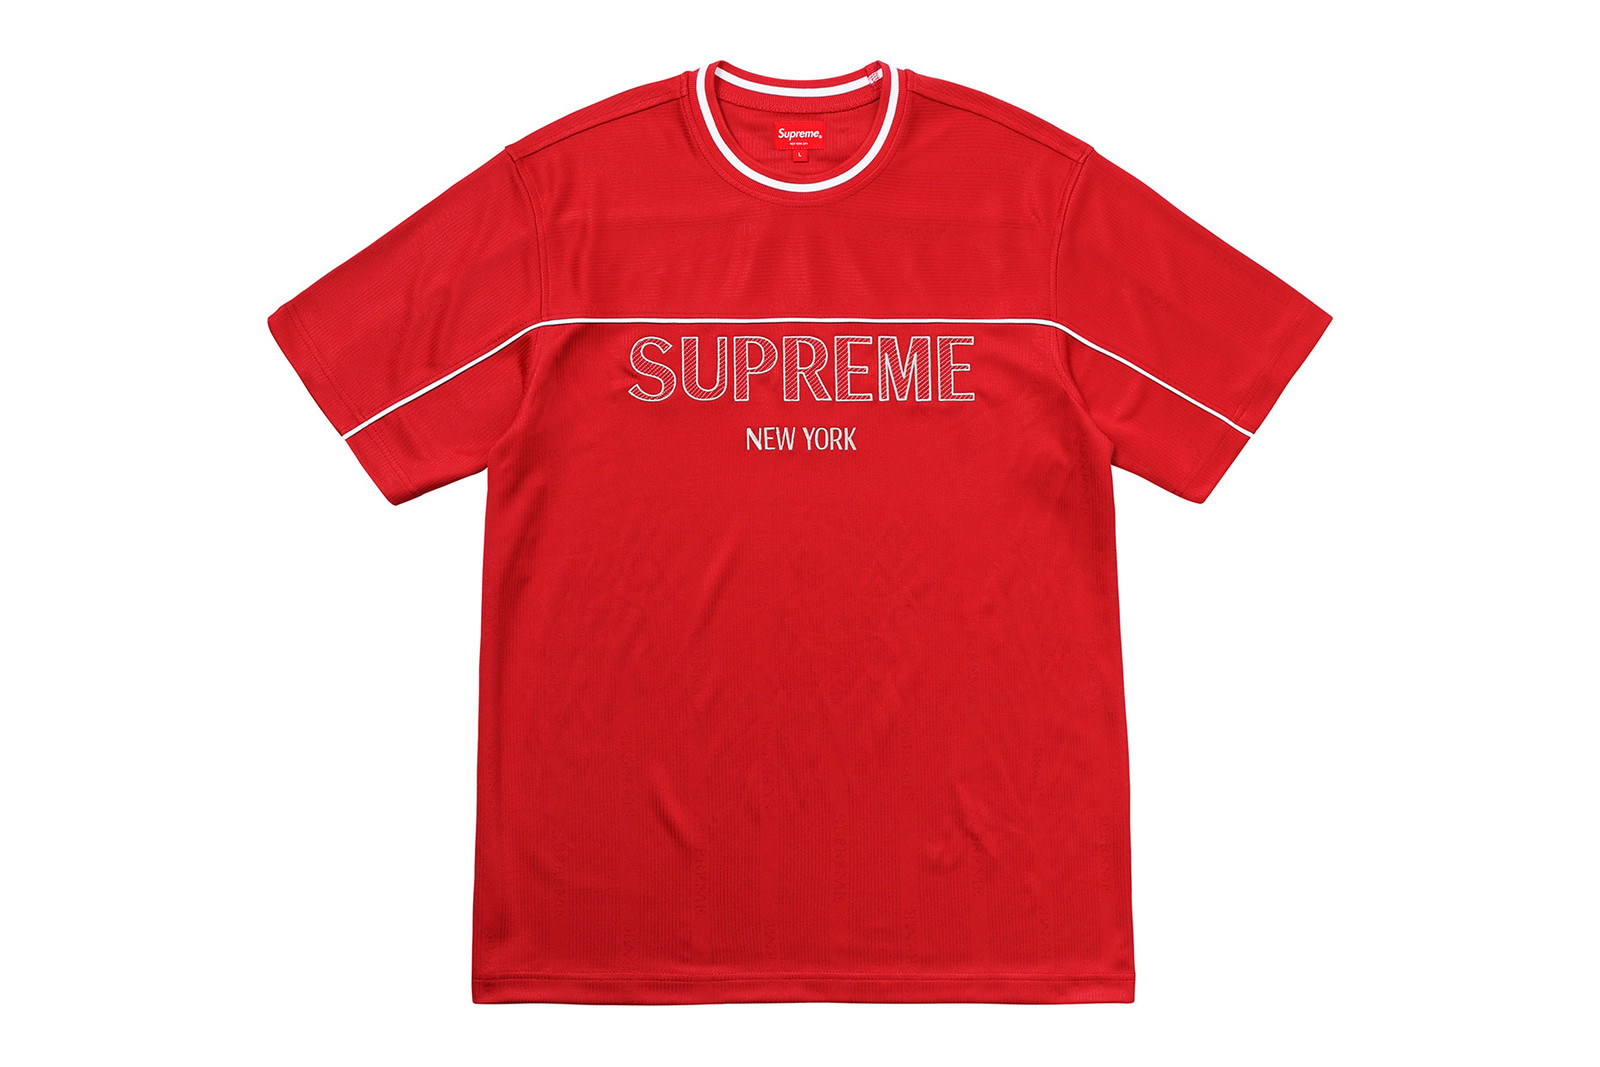 Supreme Spring/Summer 2018 Drop 4 Release Info public enemy undercover AWGE Needles asap rocky Off White kim jones gu the north face thames fred perry